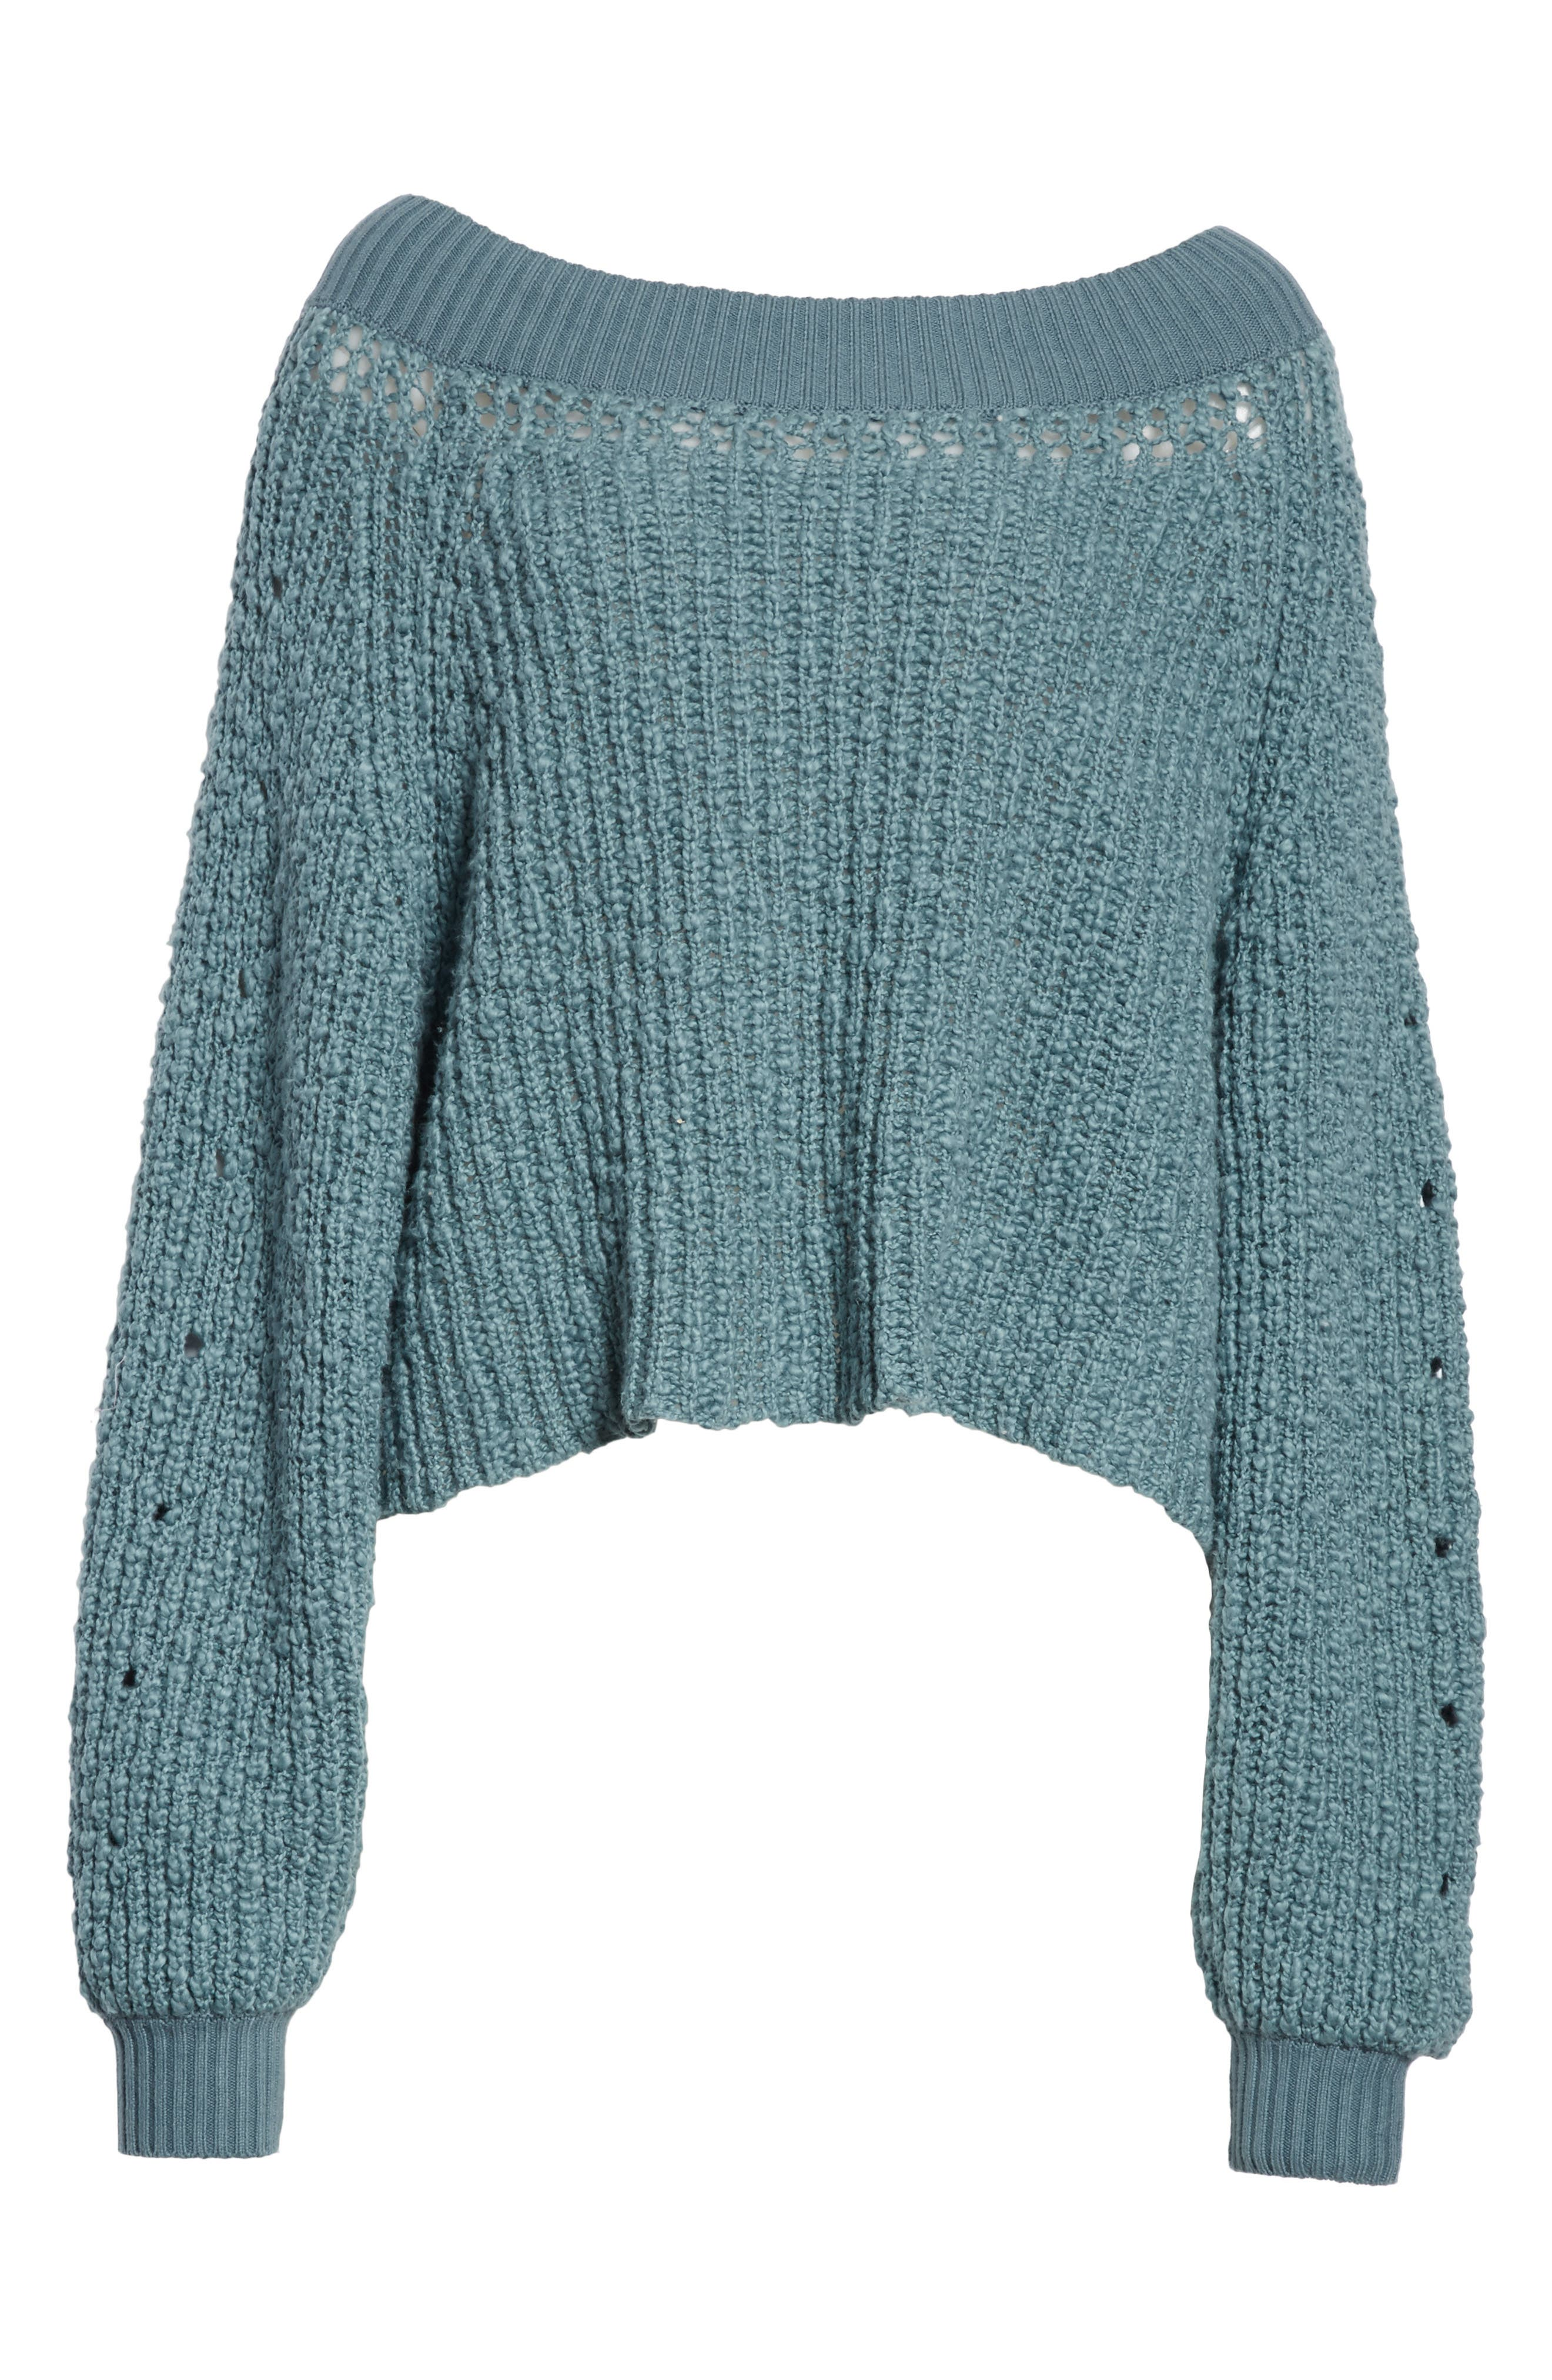 Pandora's Boatneck Sweater,                             Alternate thumbnail 22, color,